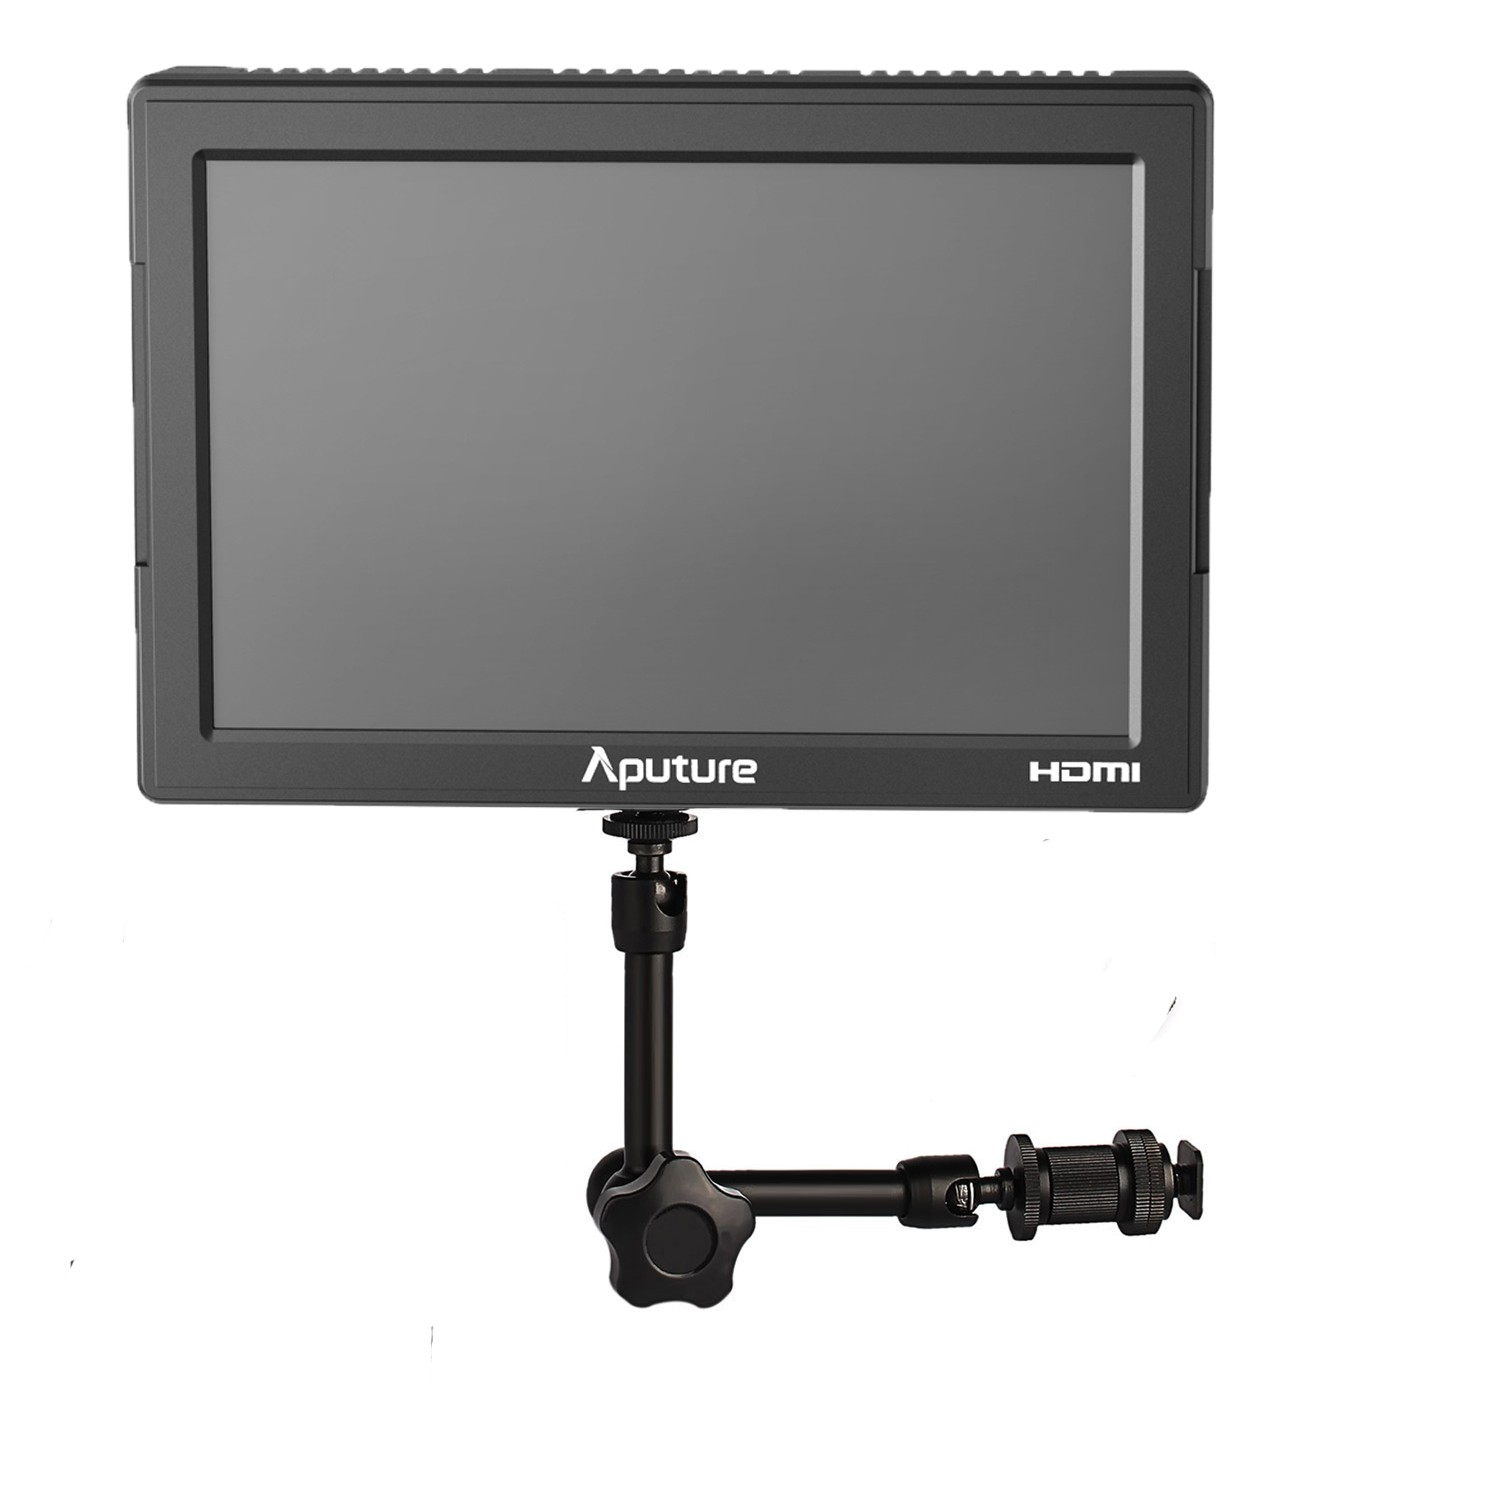 Aputure VS 5 HD SDI HDMI 1920*1200 Video Monitor + 7 inch Magic Arm for Sony Canon Nikon DSLR Camera